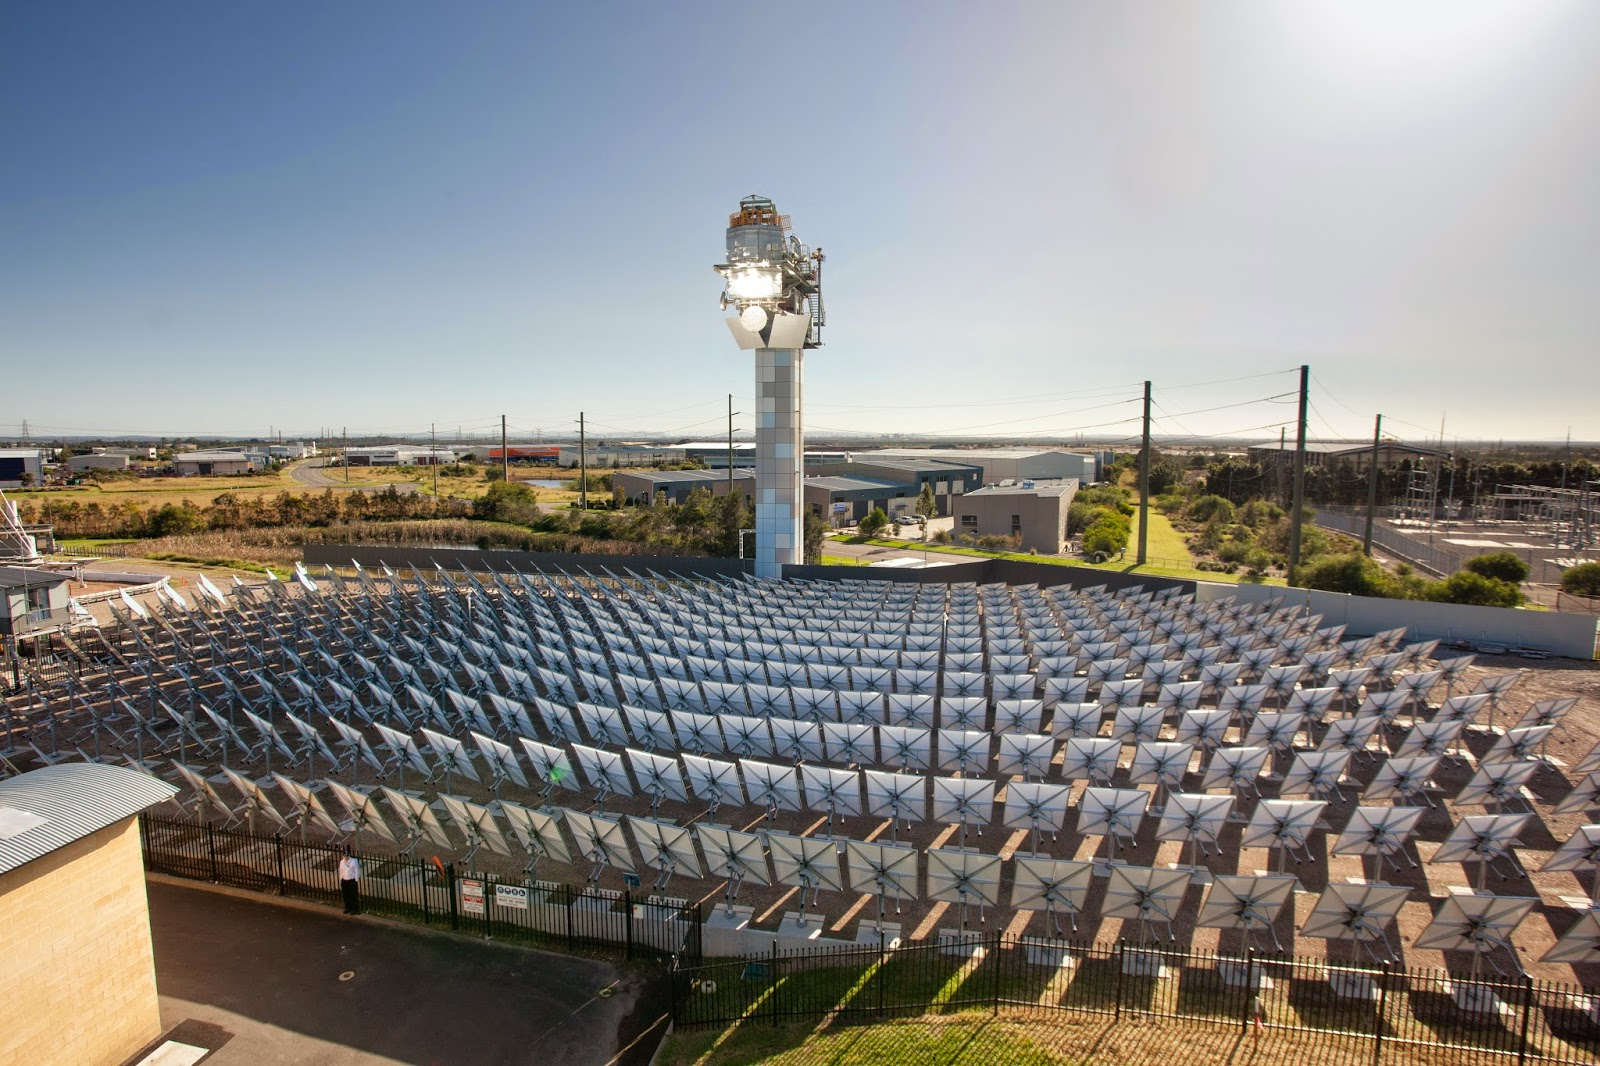 CSIRO Solar tower in operation